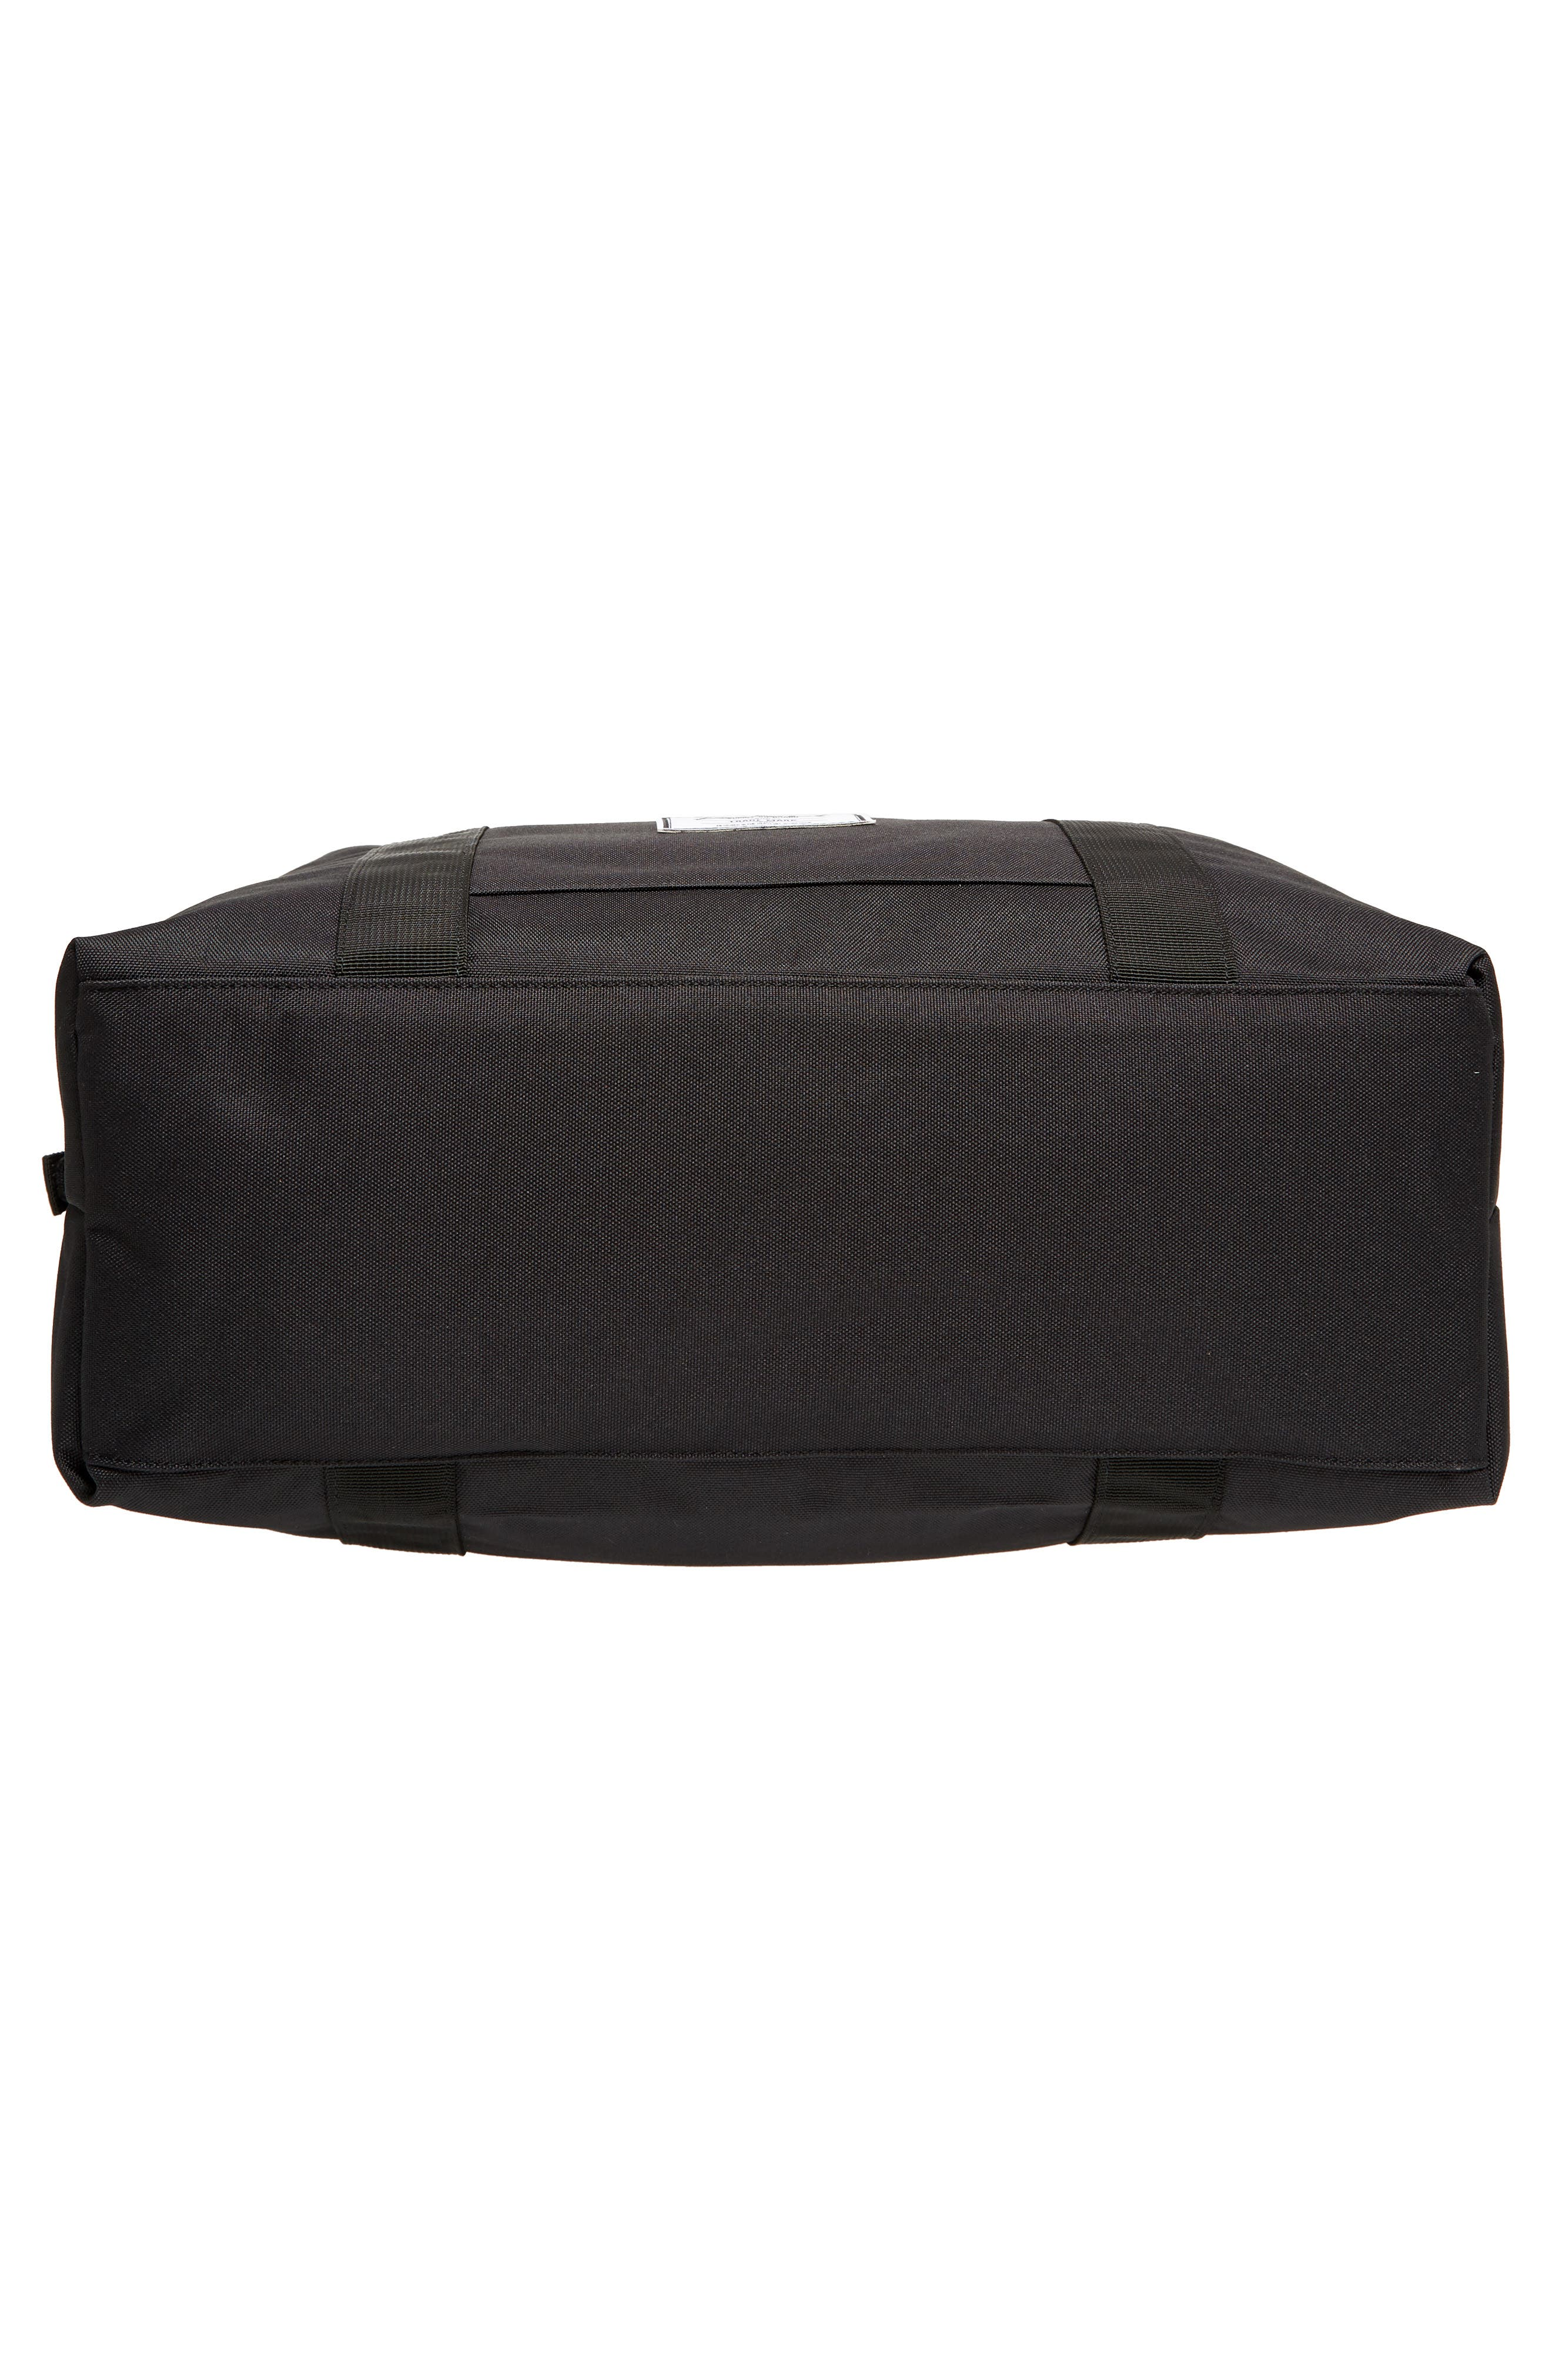 Strand Duffel Bag,                             Alternate thumbnail 6, color,                             001